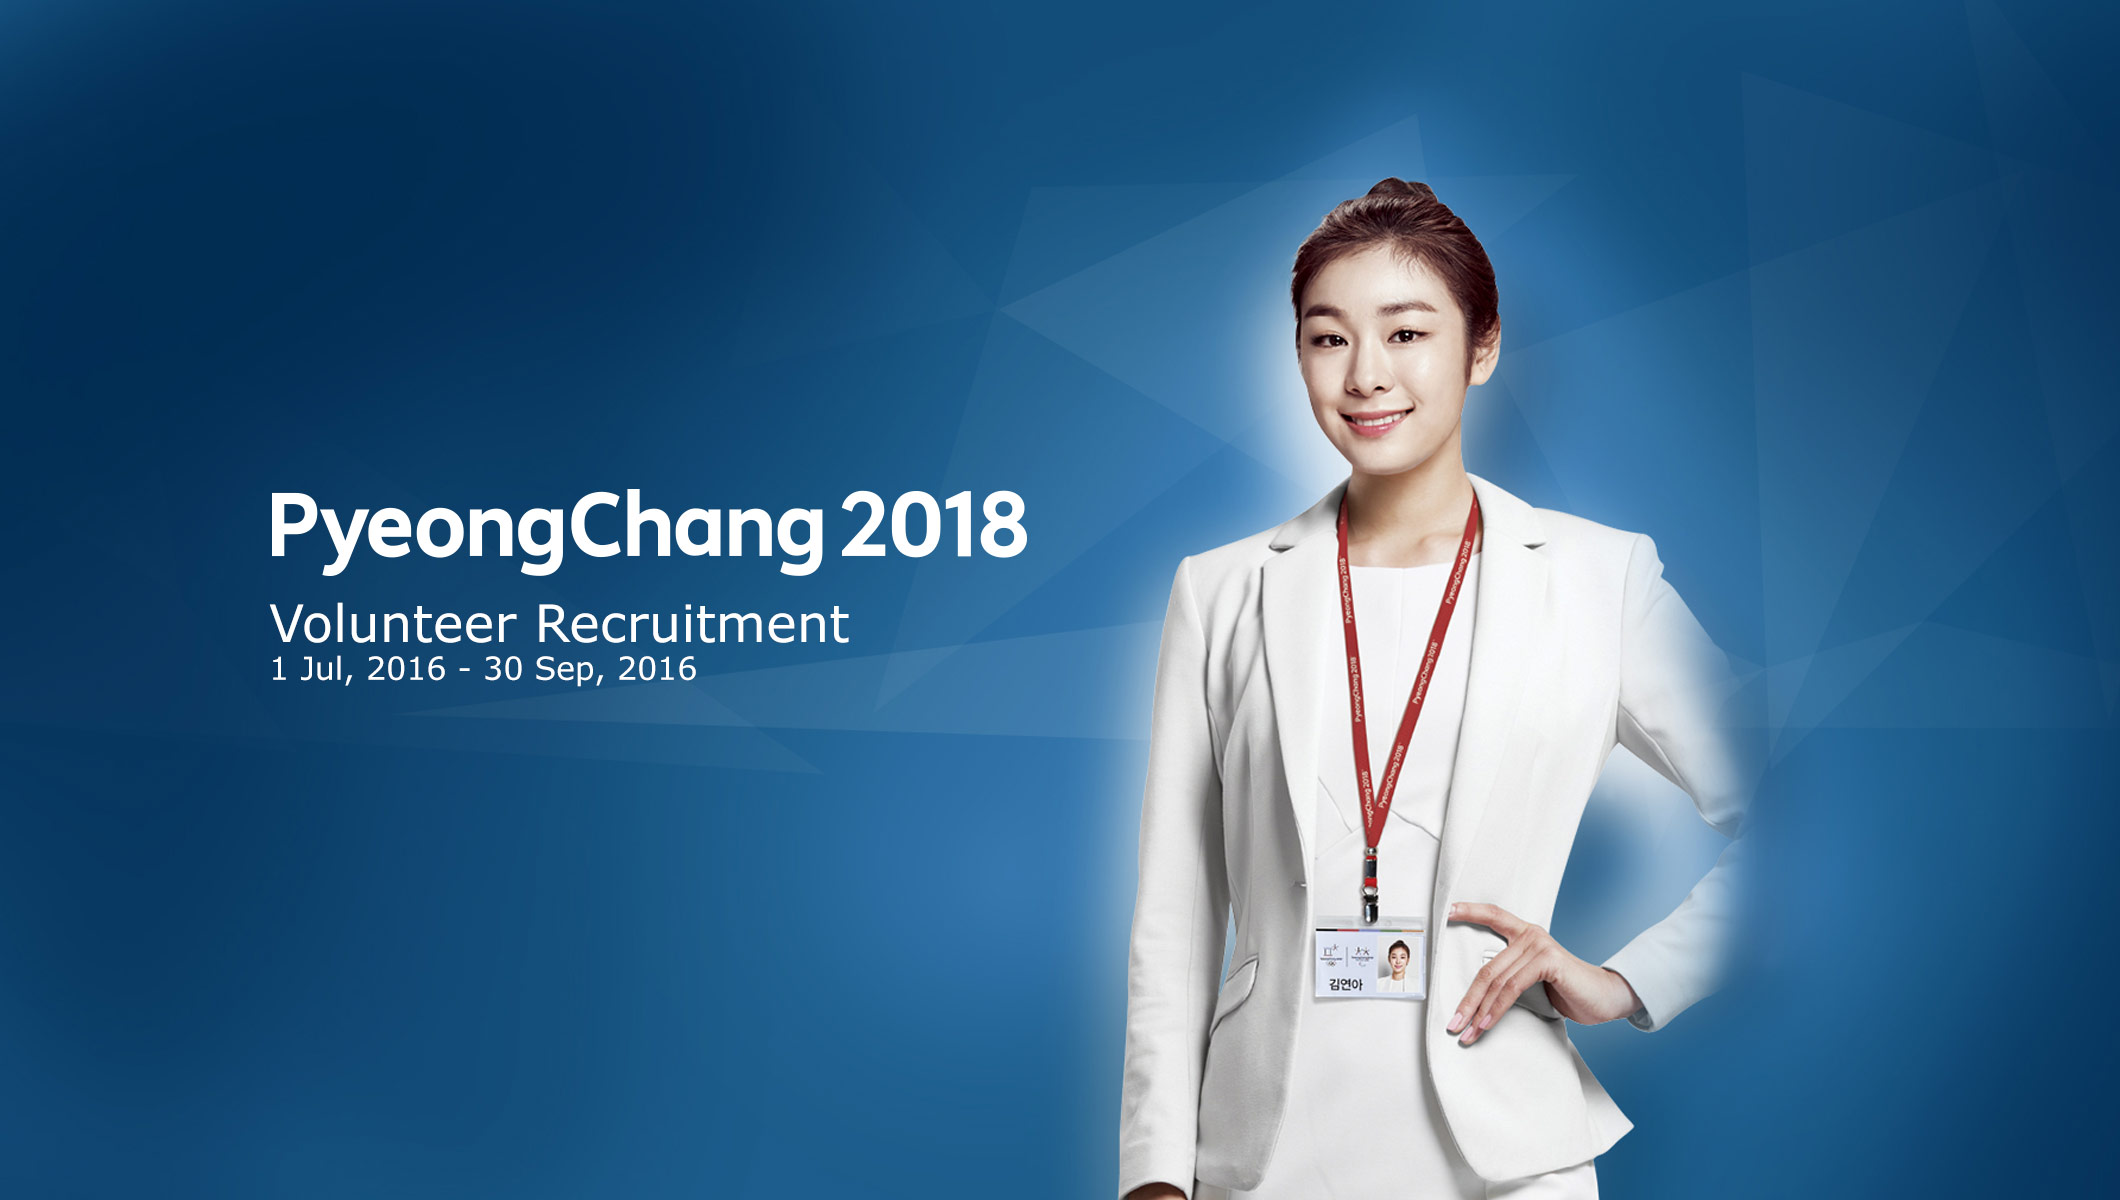 PyeongChang 2018 issues a global invitation for Olympic ...